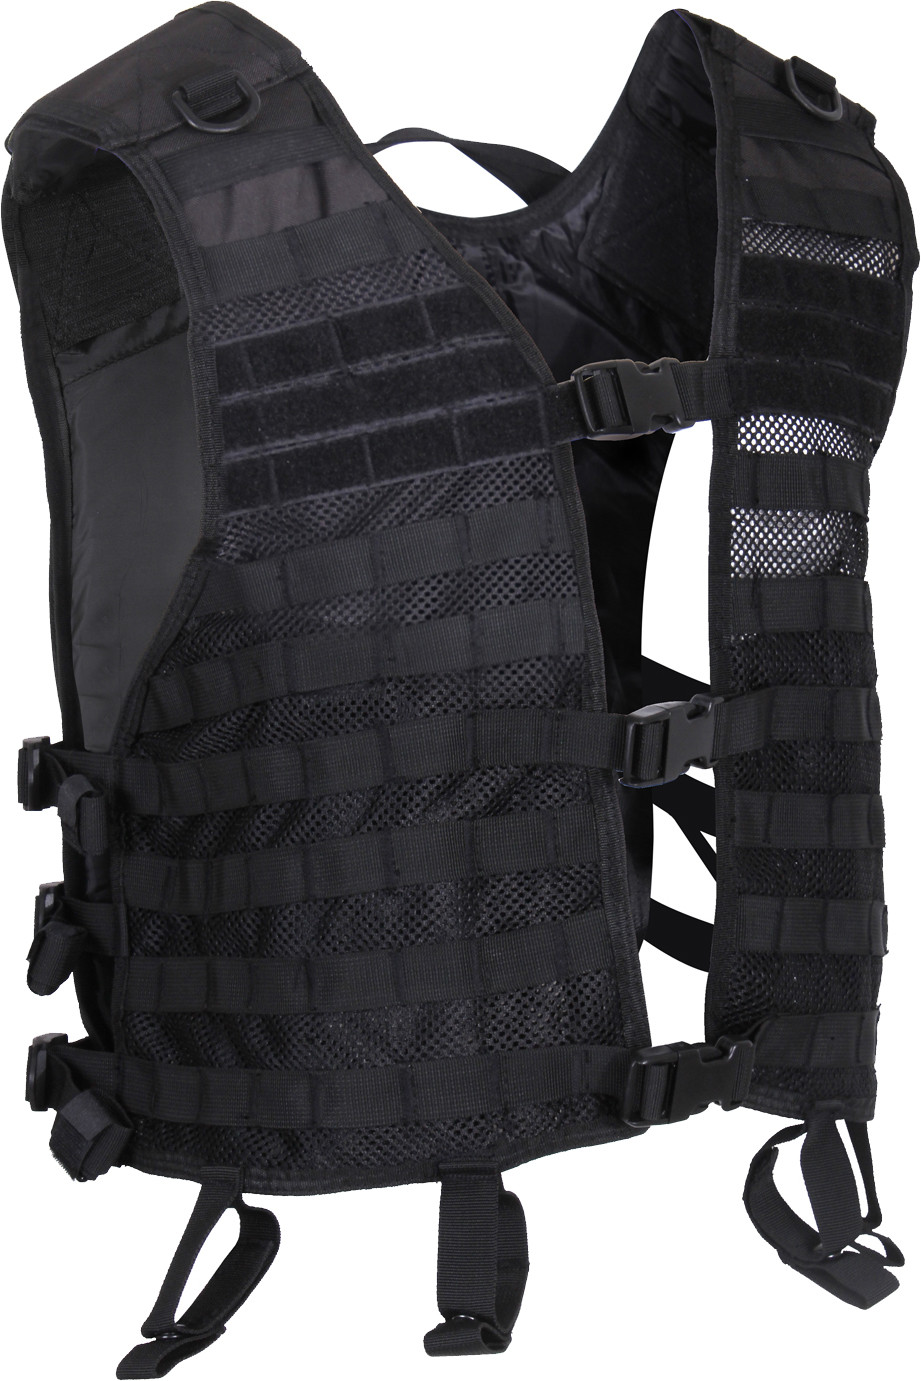 More Views. Black Military MOLLE Adjustable Lightweight Mesh Tactical  Utility Vest ... c0a9d34a267